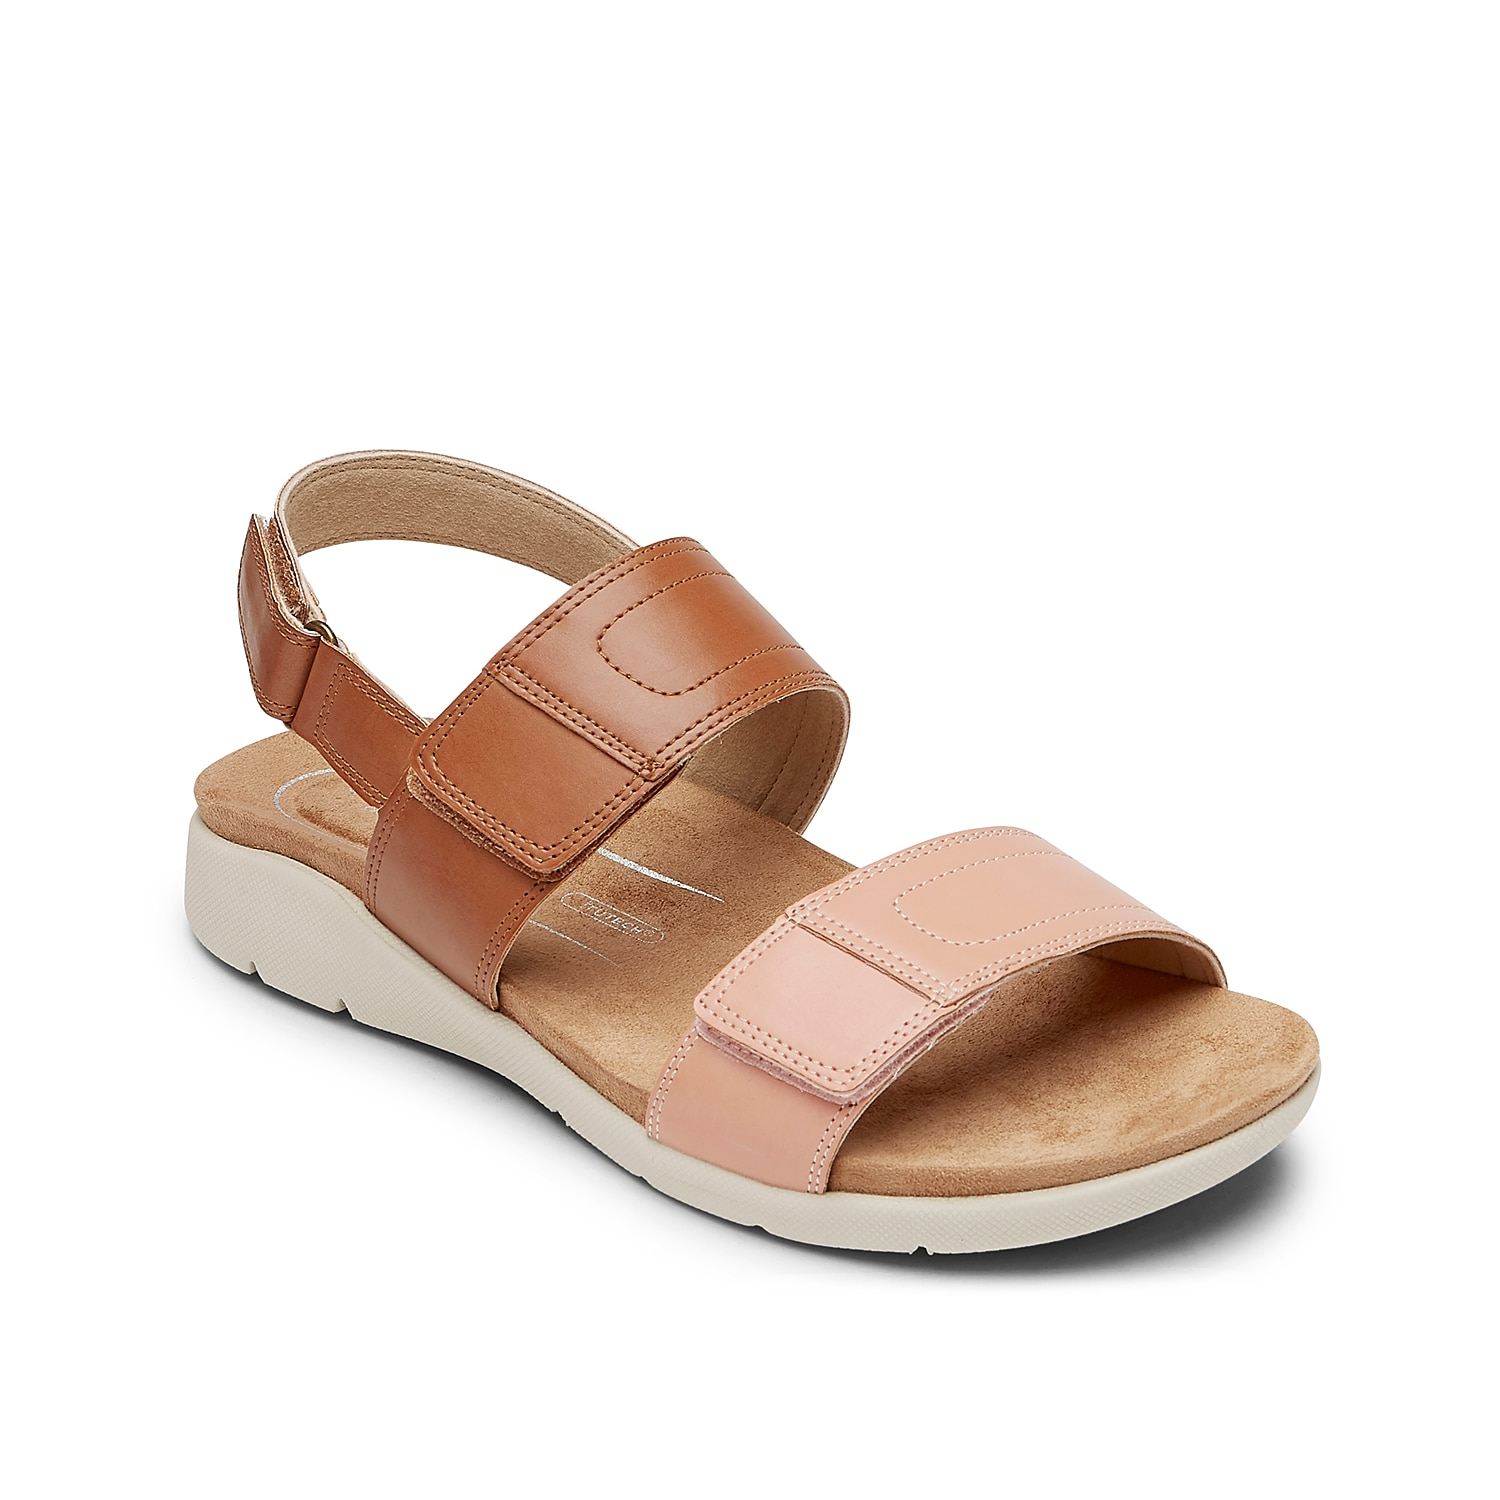 The Eileen sandal from Rockport flaunts versatile style that will pair with any warm weather look. A truTech footbed, EVA sole, and triple hook and loop straps provide daylong comfort.